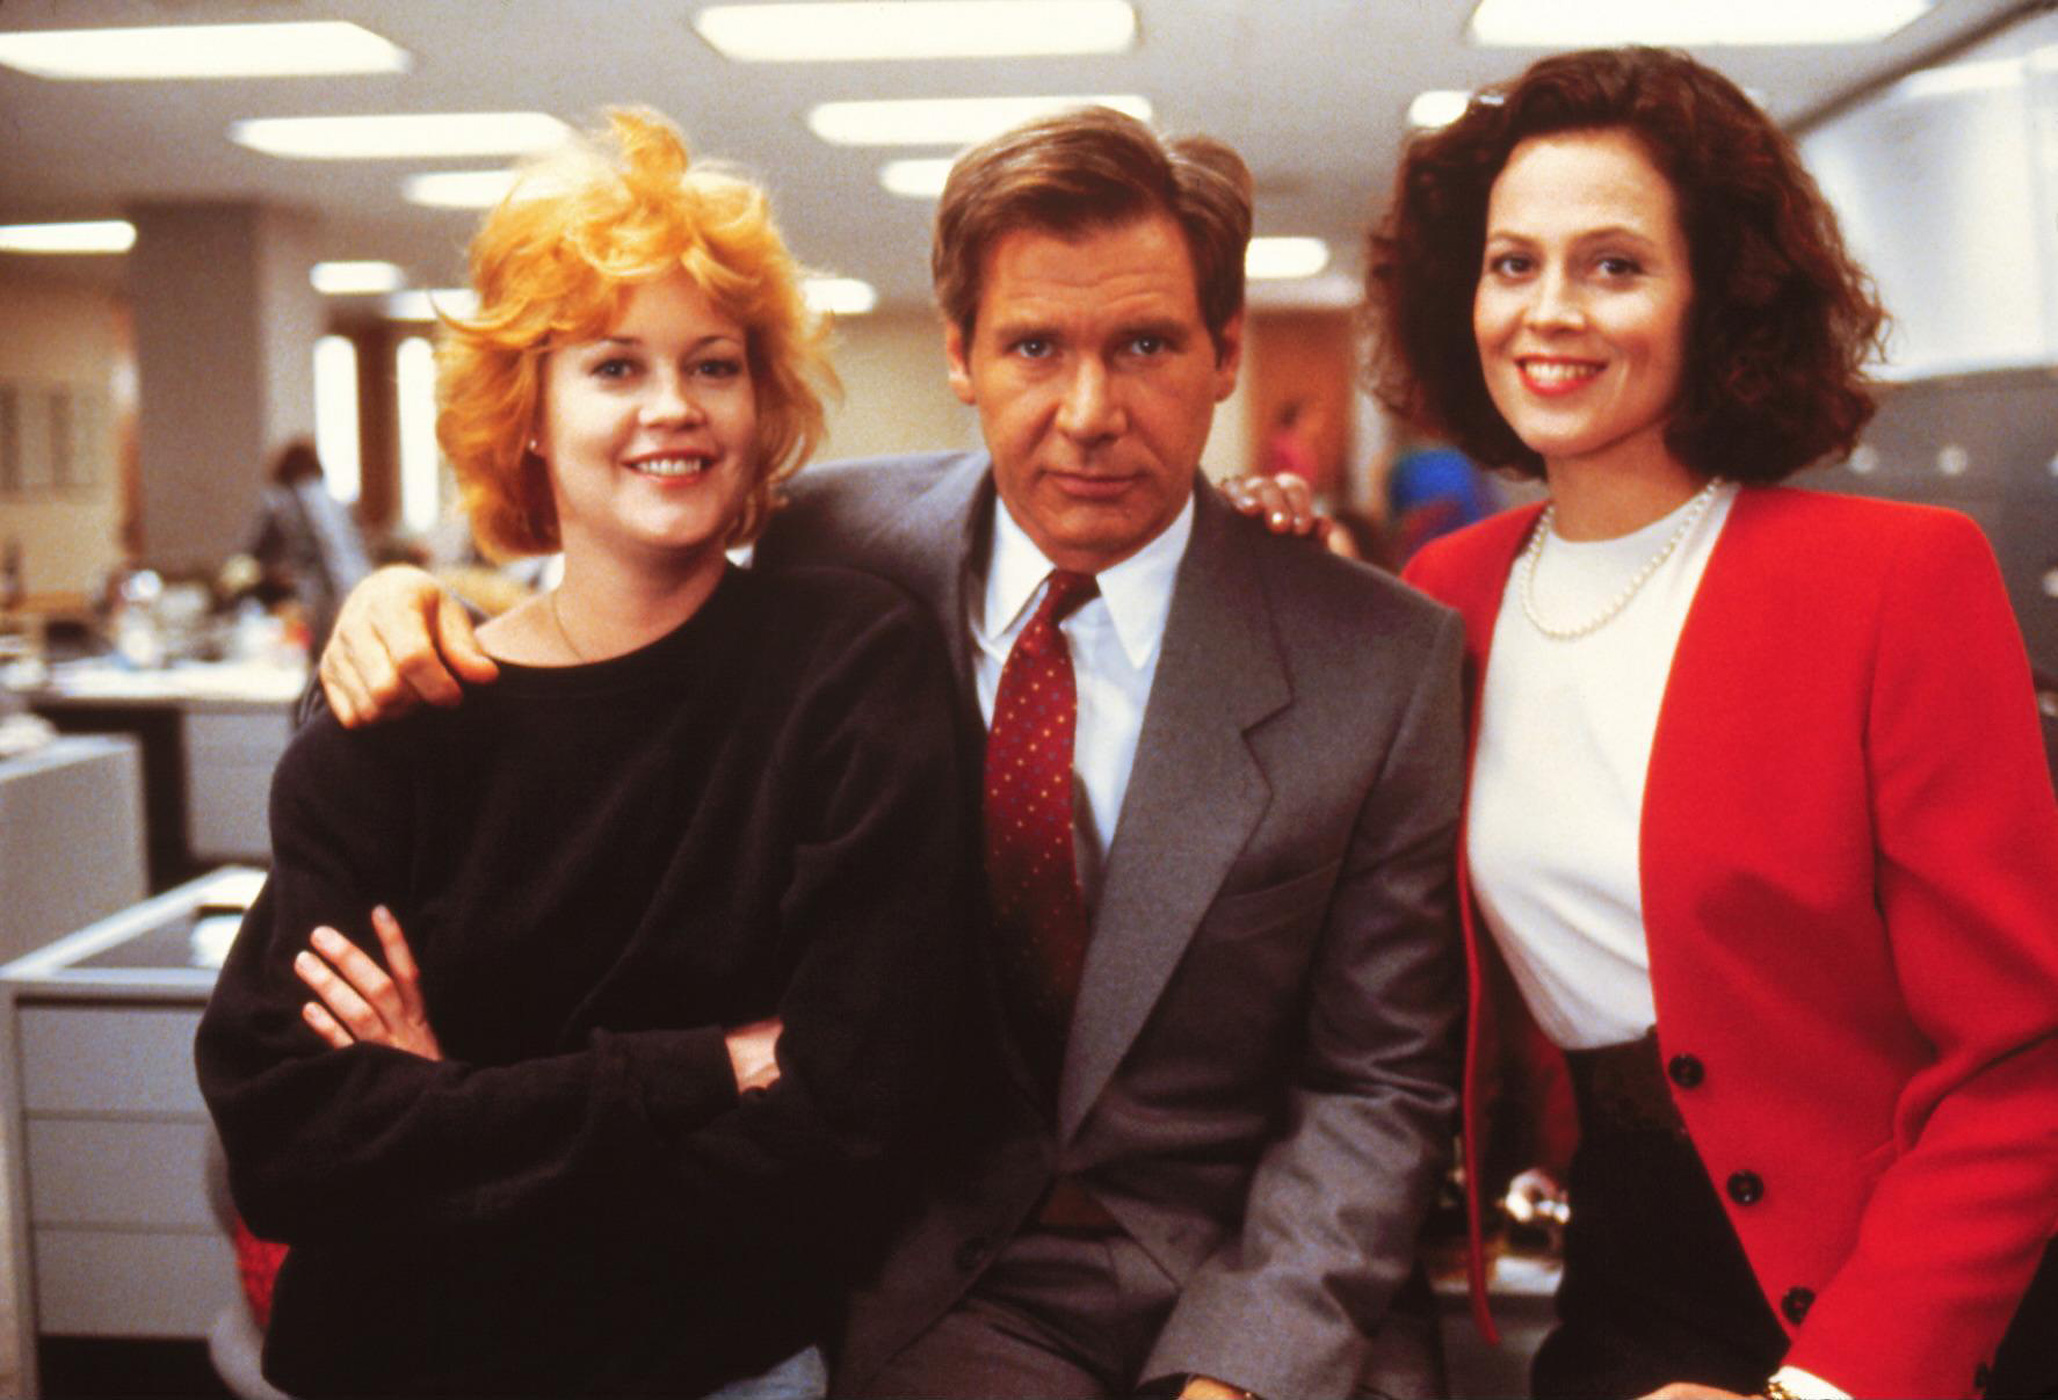 As Katharine Parker, Weaver was the nightmare boss to Melanie Griffith's Tess McGill in 1988's Working Girl.